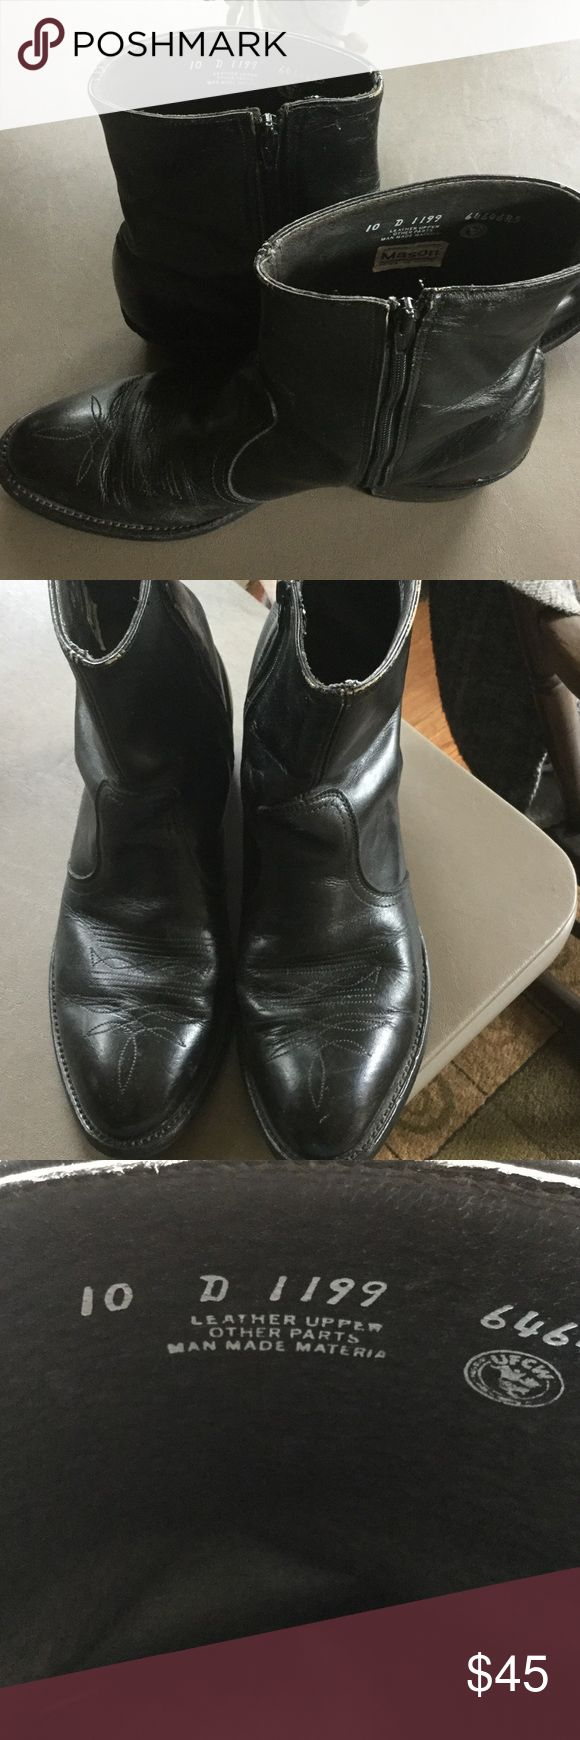 Men's Black Leather Dress Cowboy Boots Size 10 Dressed up leather classic western boot - has premium leather upper and stitched toe medallion.  These cowboy boots are used but still have a lot of wear to them. Side zipper. Mason Shoes Cowboy & Western Boots